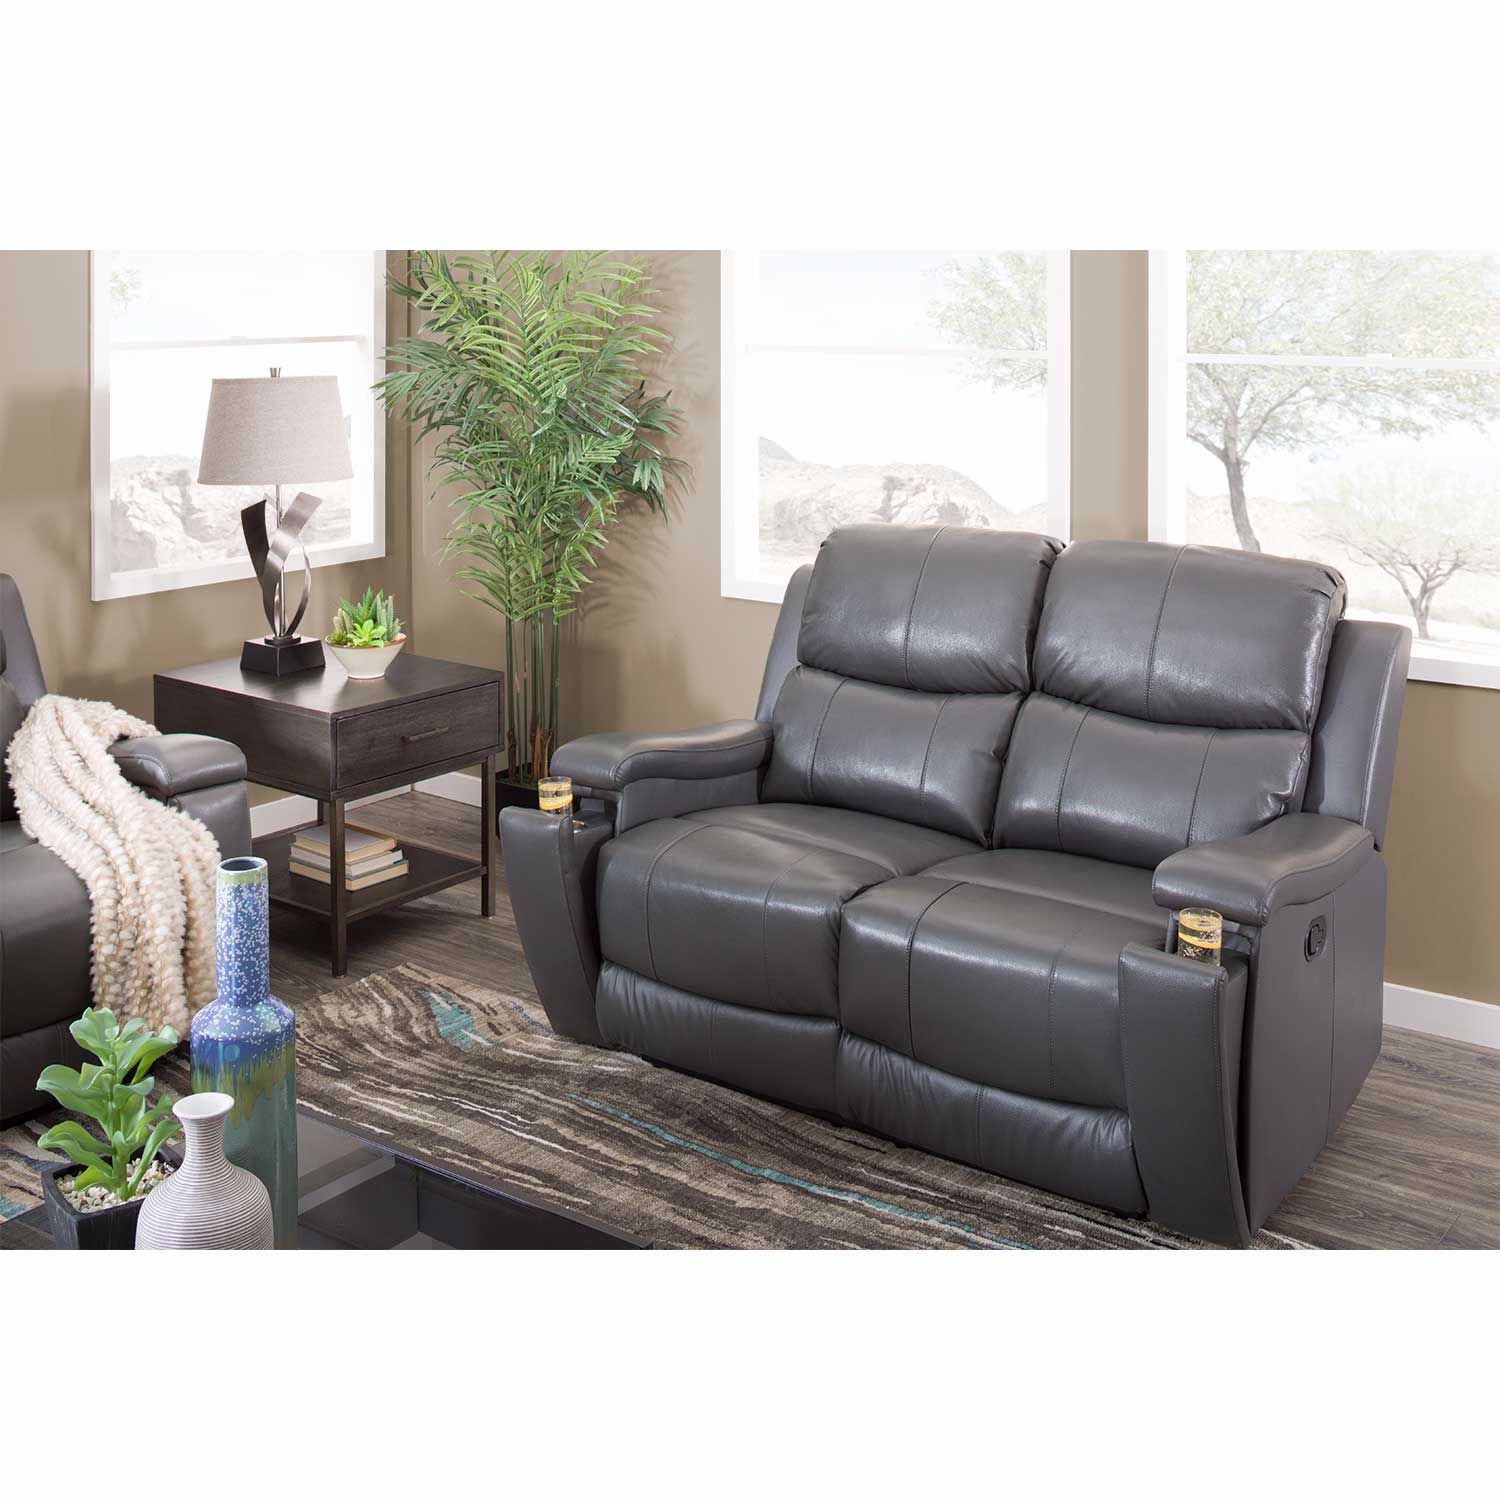 Picture of Dayton Leather Recliner